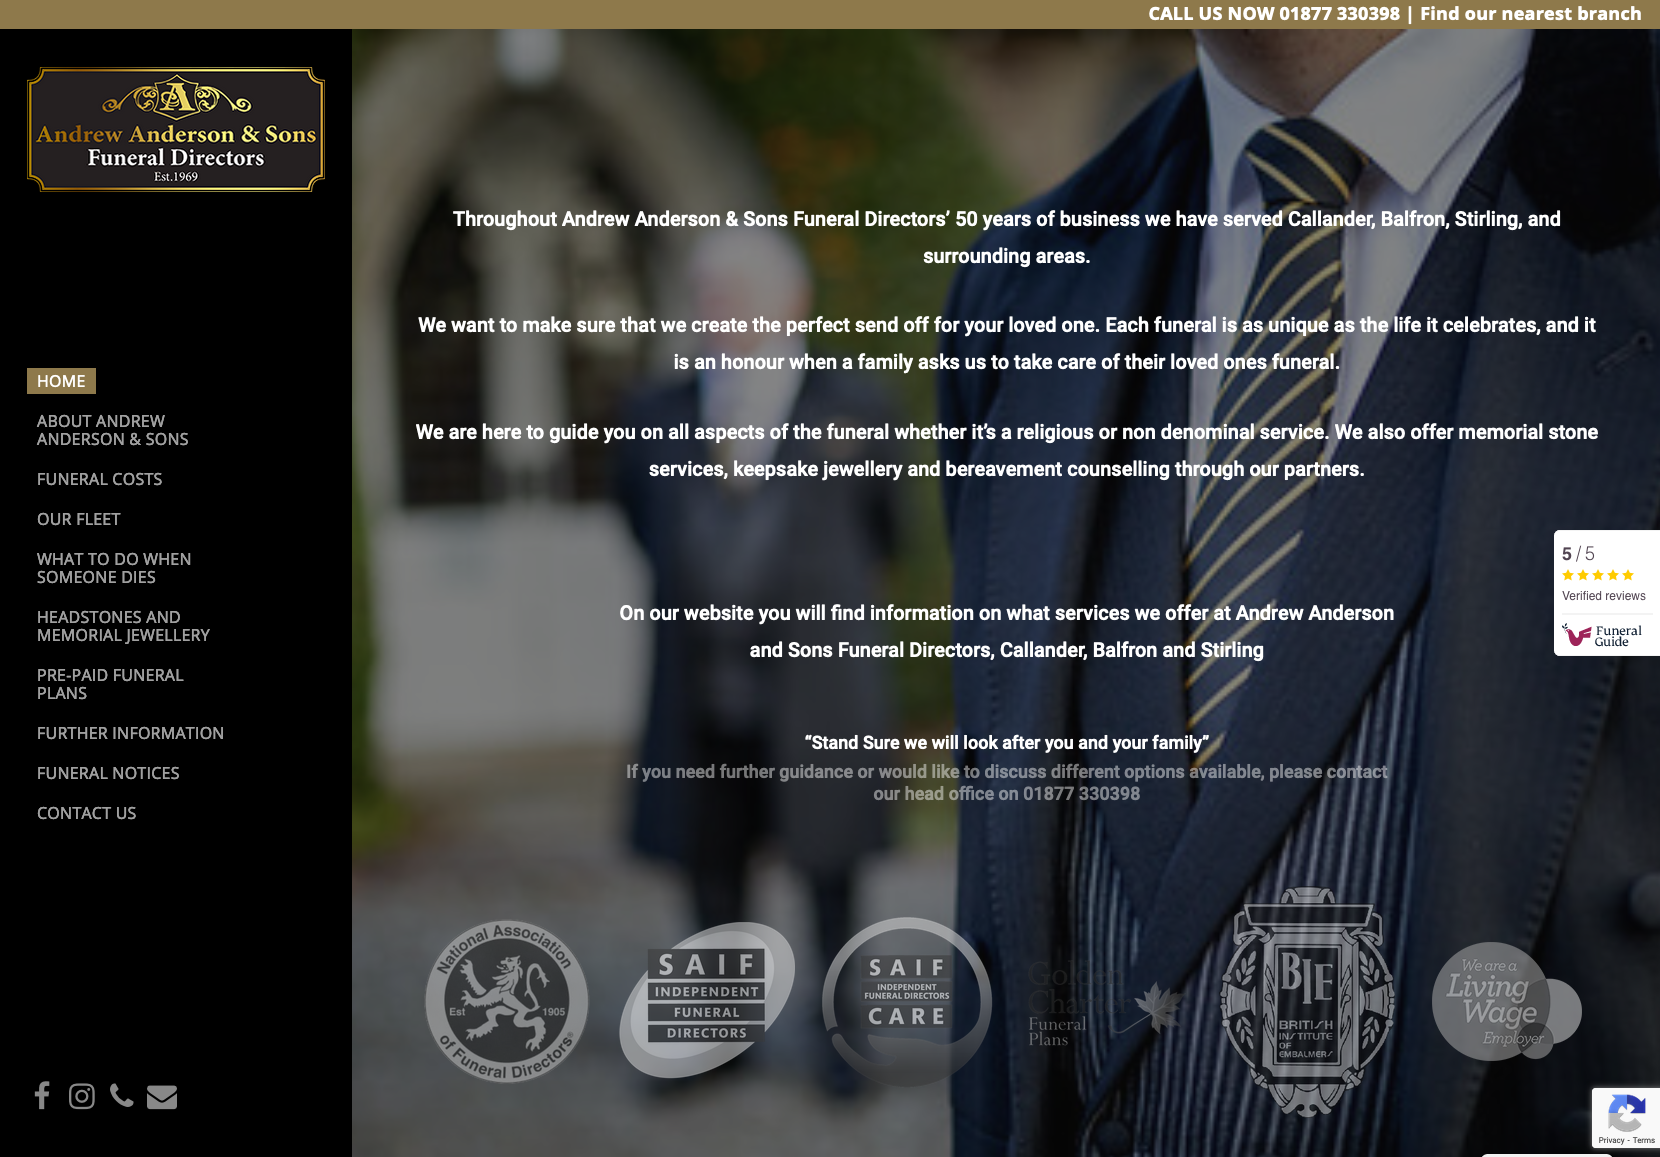 Andrew Anderson & Sons Funeral Directors - homepage - Apr2021